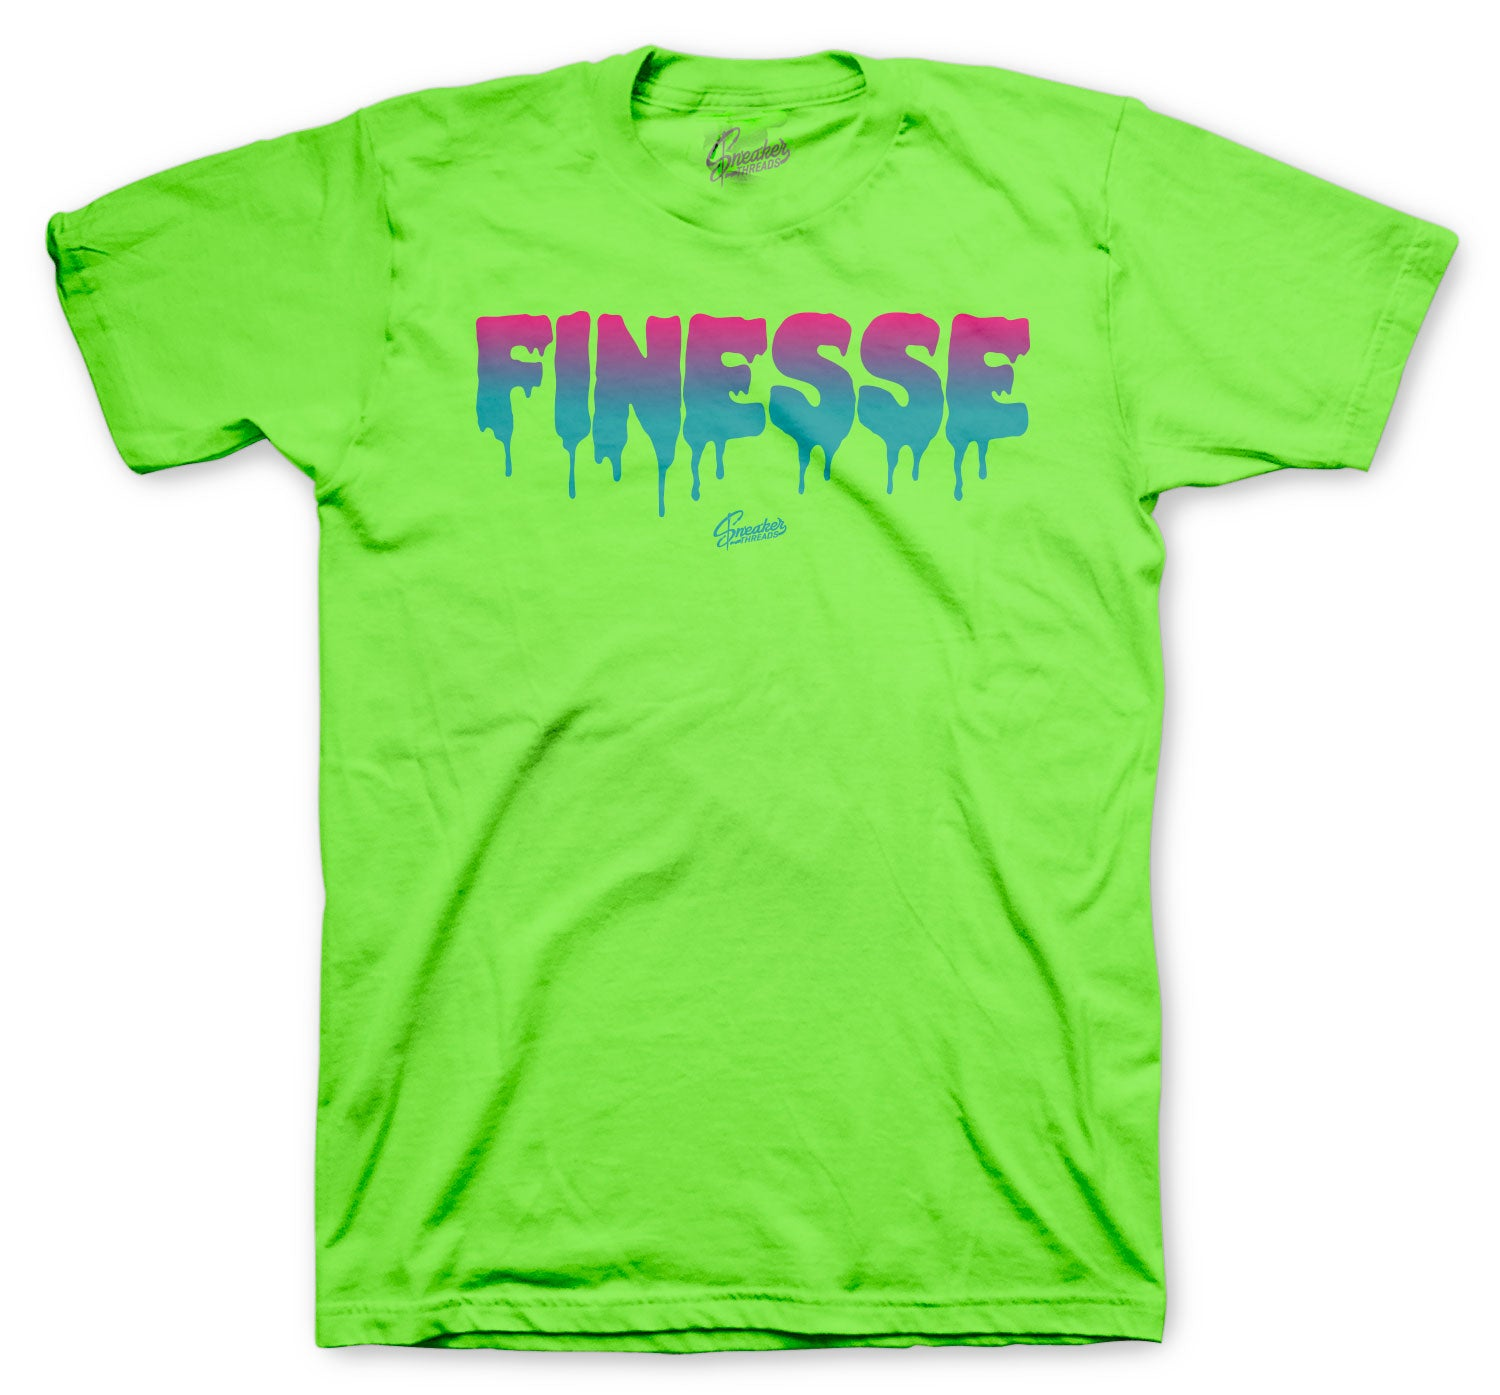 All Star 2020 Swackhammer Shirt  - Finesse - Neon Green